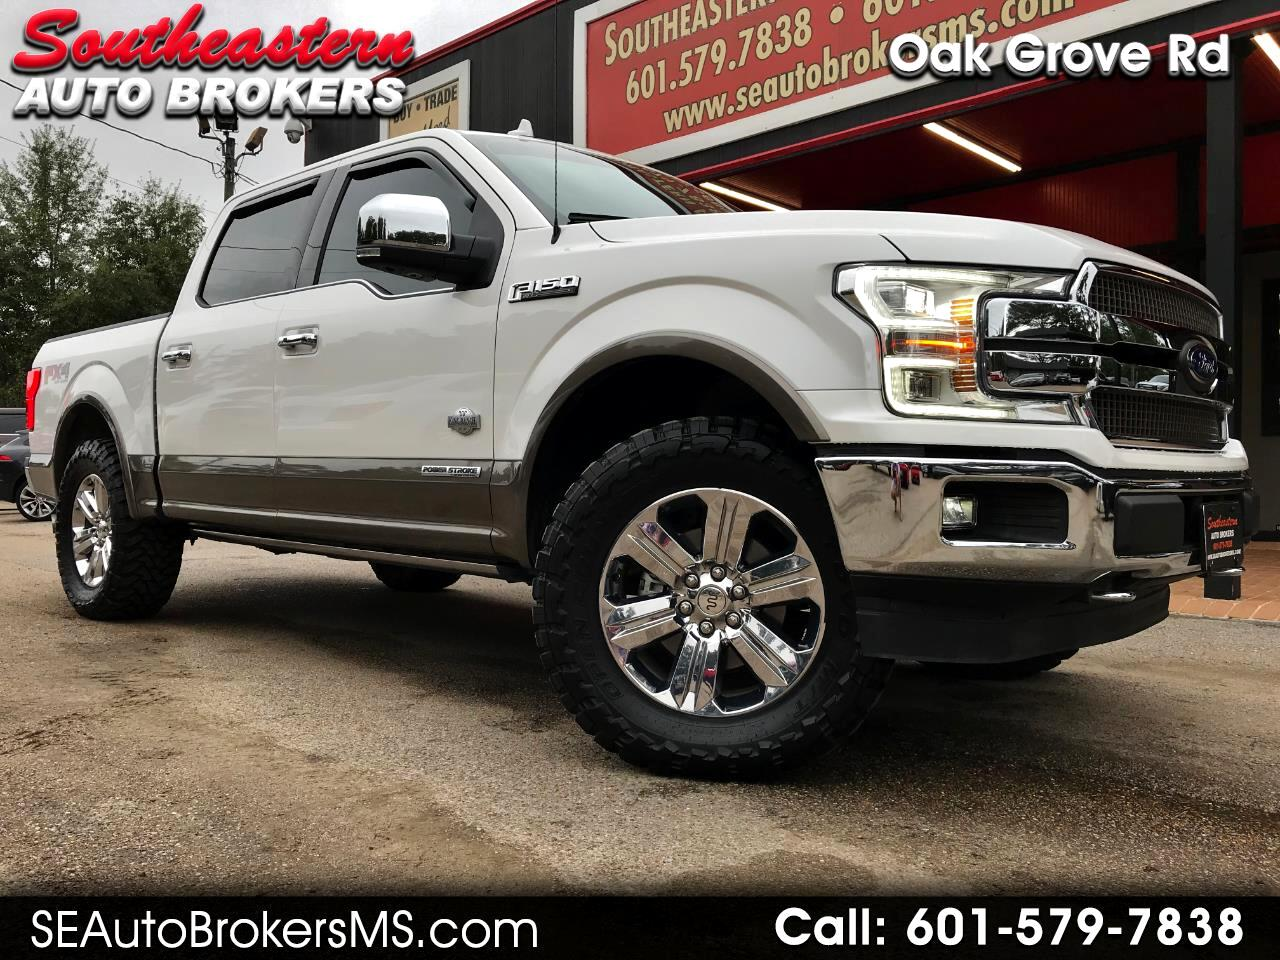 2018 Ford F-150 KING RANCH CREW CAB 4WD LEVELED POWER STROKE DIESE